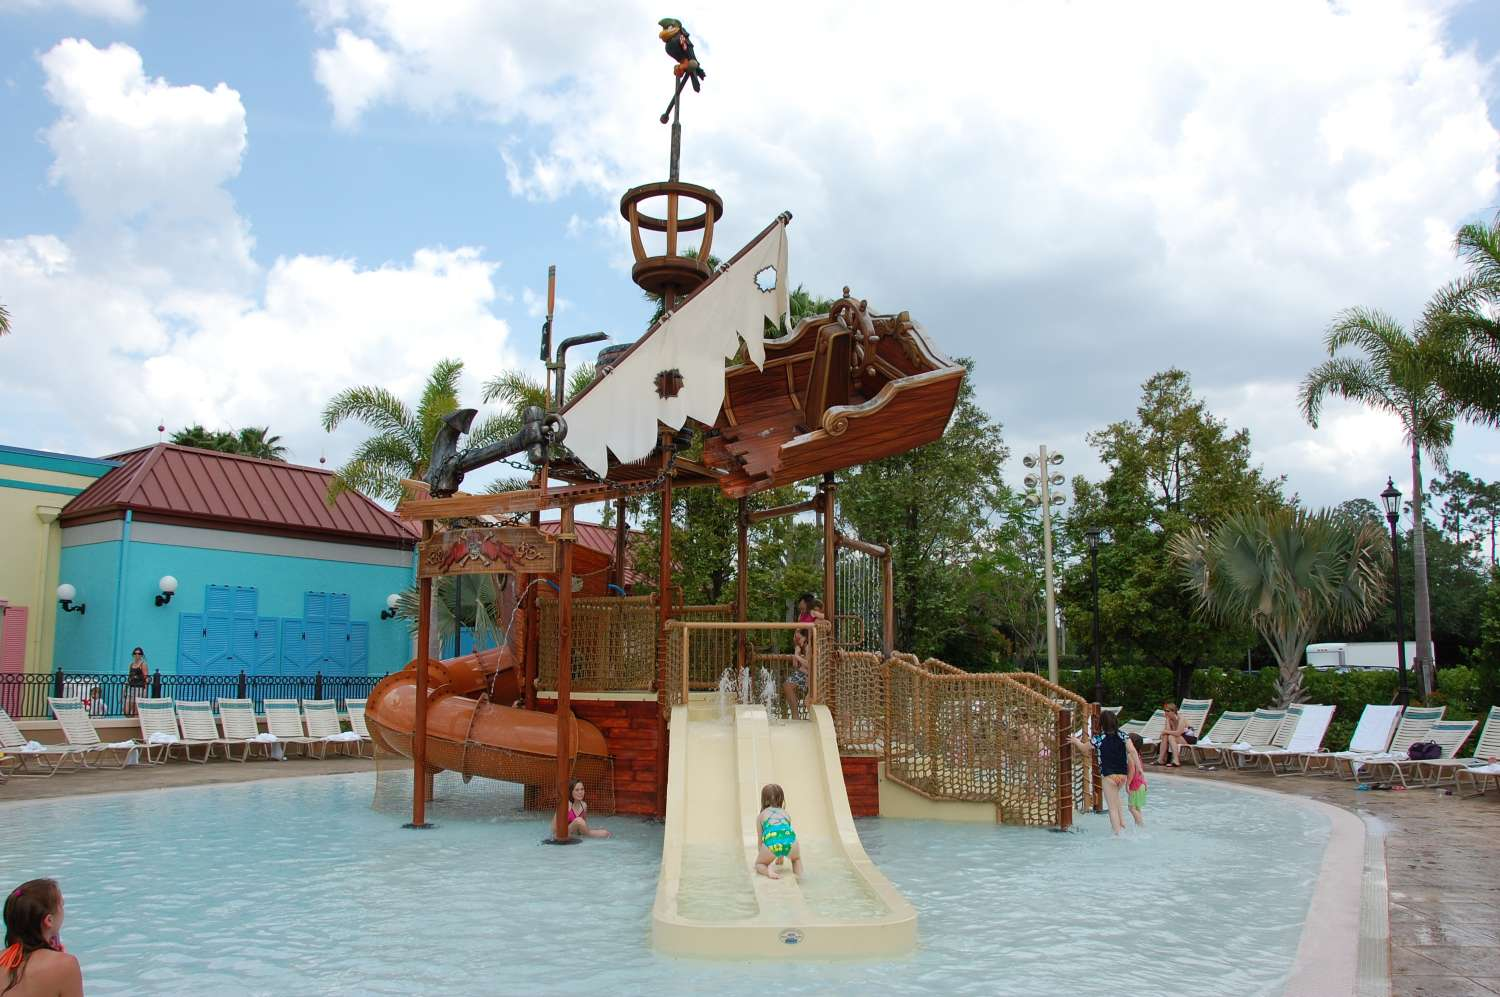 Disney's-Caribbean-Beach-Resort-Pirate-Ship-Water-Play-Area.jpg